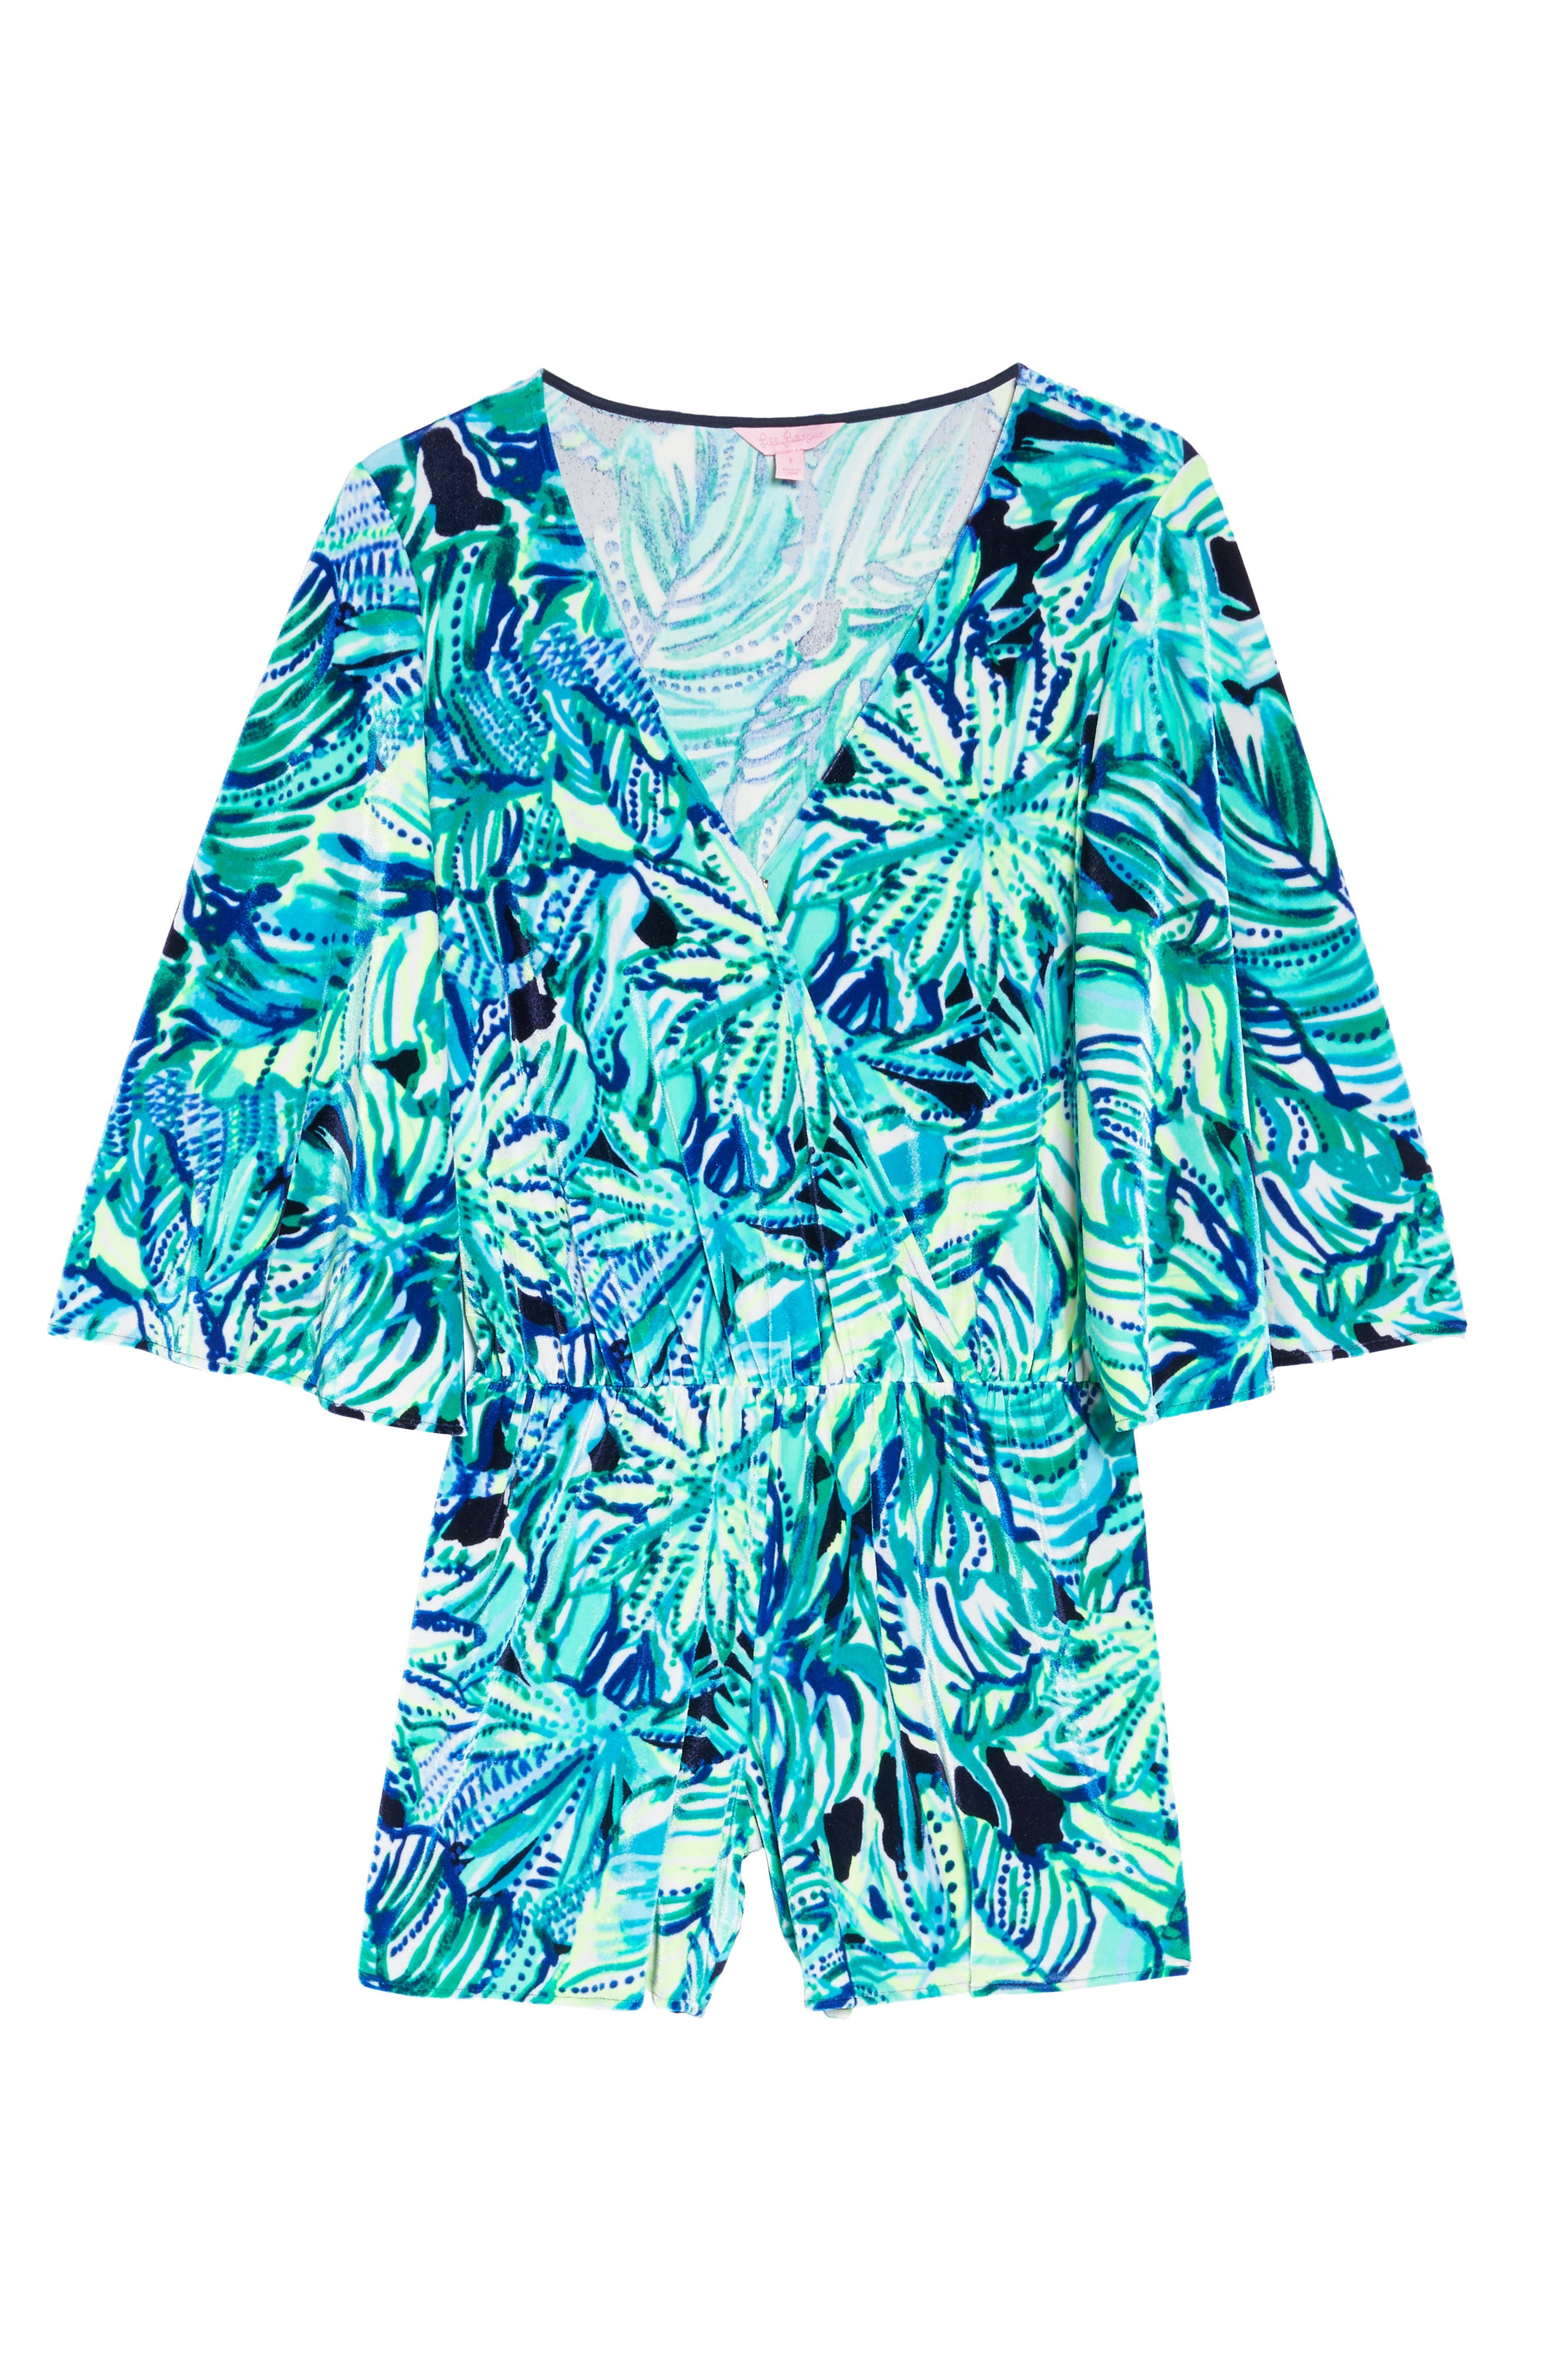 Lily Pulitzer<sup>®</sup> Viviana Romper,                             Alternate thumbnail 6, color,                             Bright Navy Dally